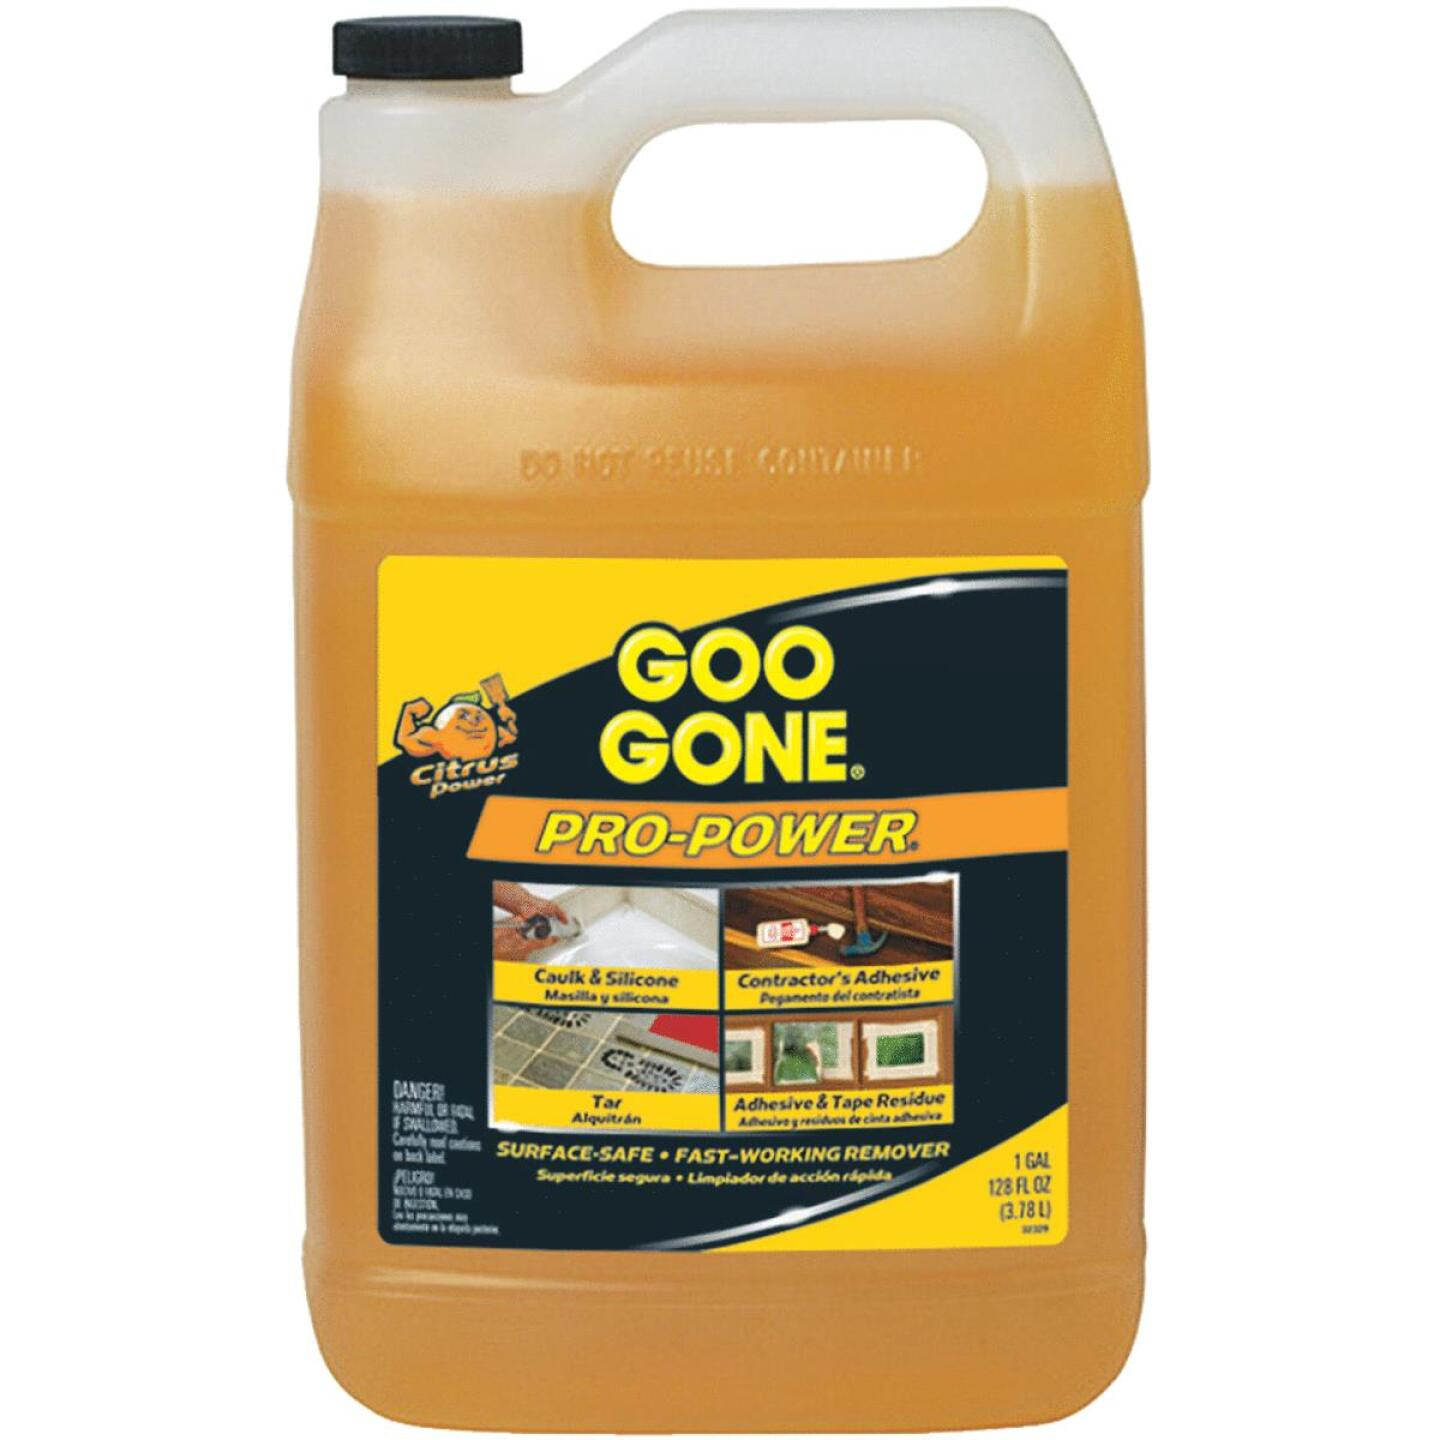 Goo Gone 1 Gal. Pro-Power Adhesive Remover Image 361